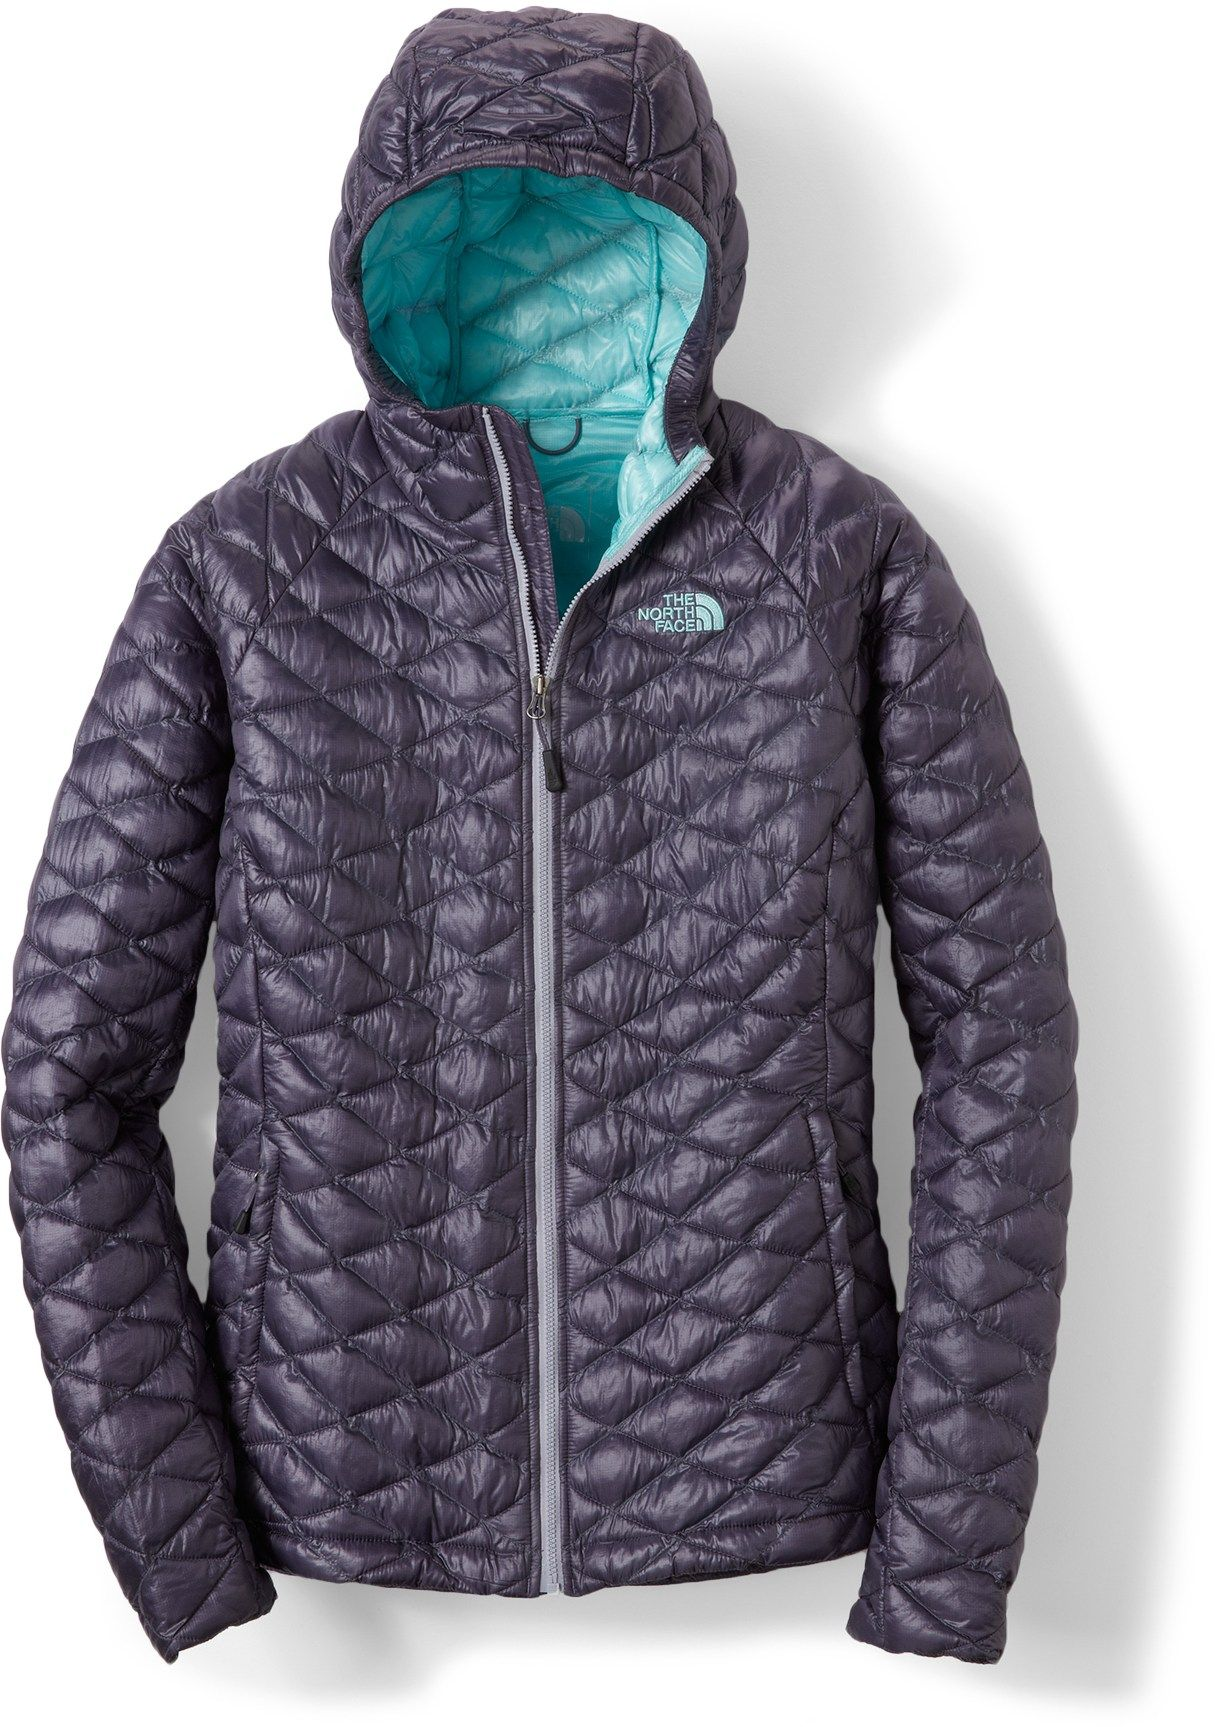 The North Face ThermoBall Hoodie Jacket - Women s - Free Shipping at  REI.com - greystone blue   sports chalet 5786f16bf